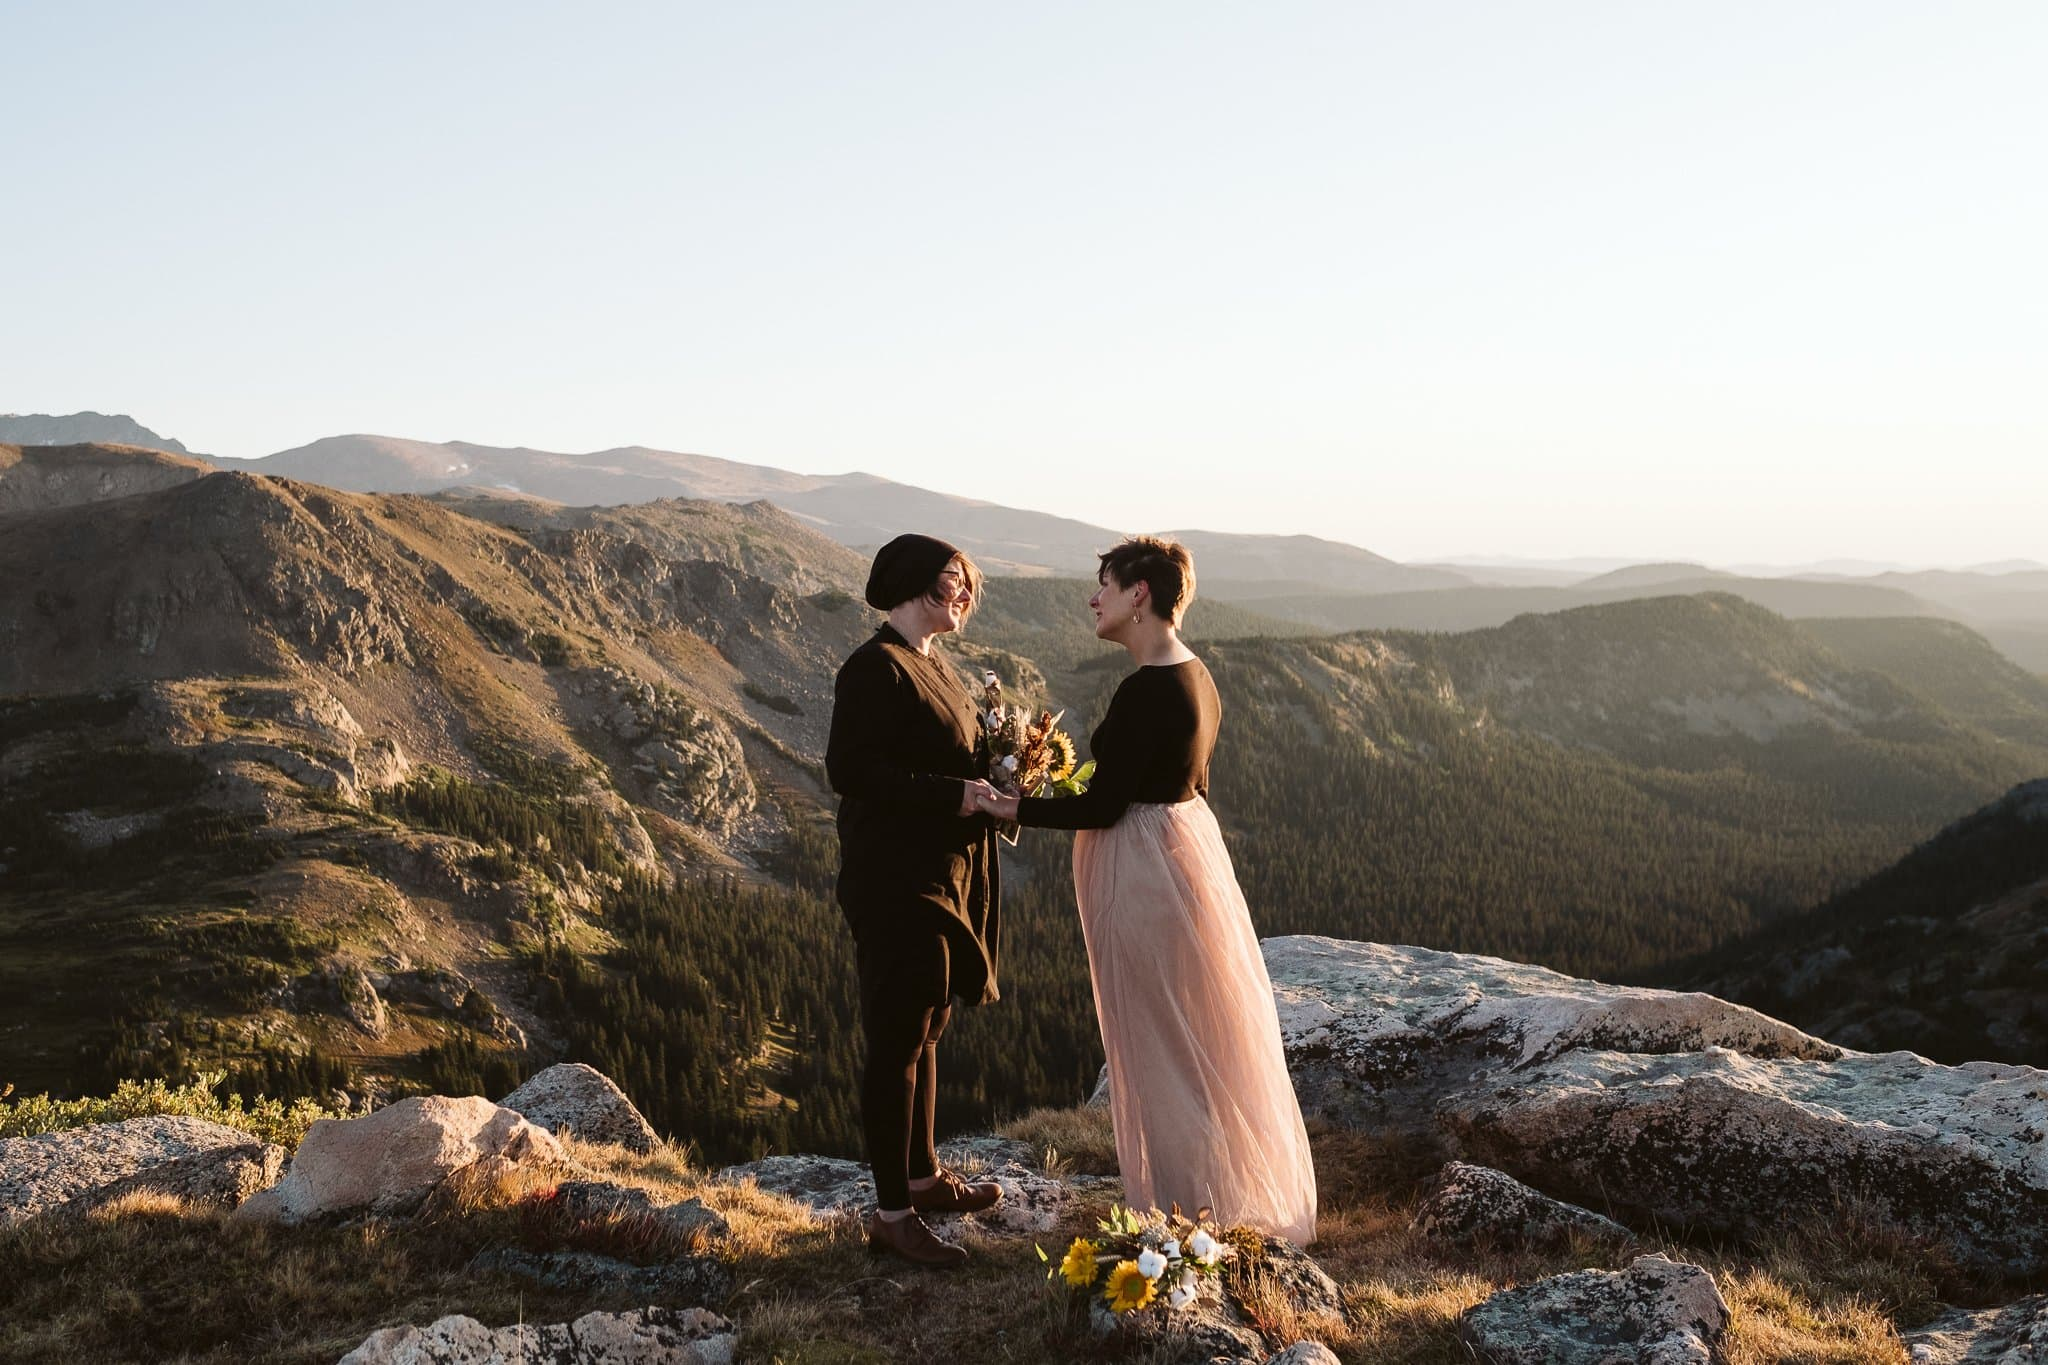 Katharina + Kim's Indian Peaks Wilderness Elopement